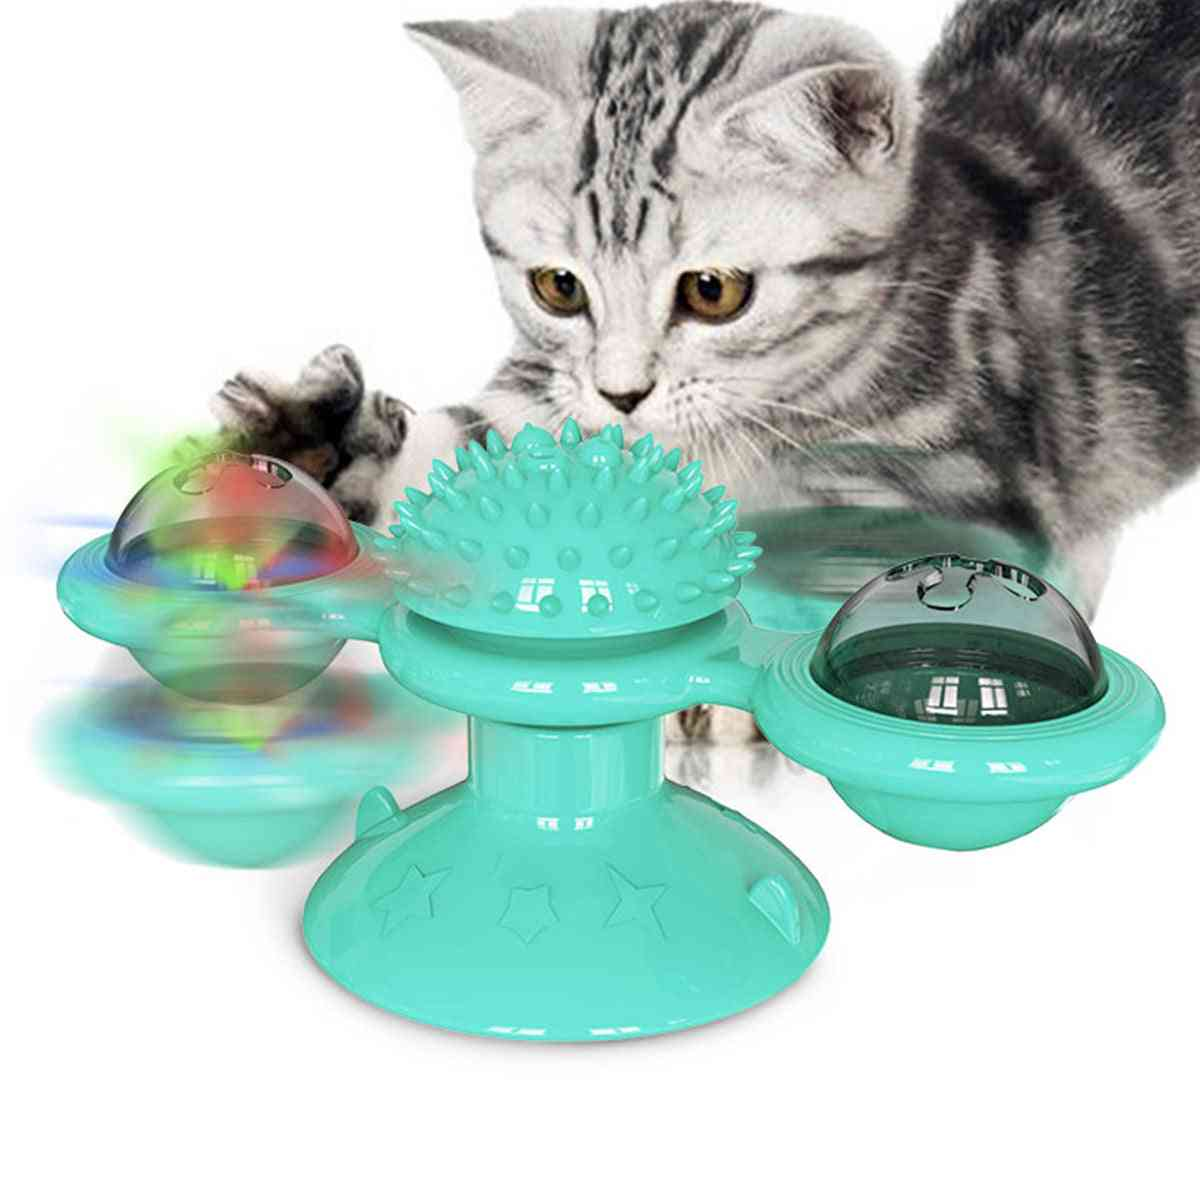 Cat Windmill Massage, Rotatable With Catnip Led Ball For Teeth Cleaning